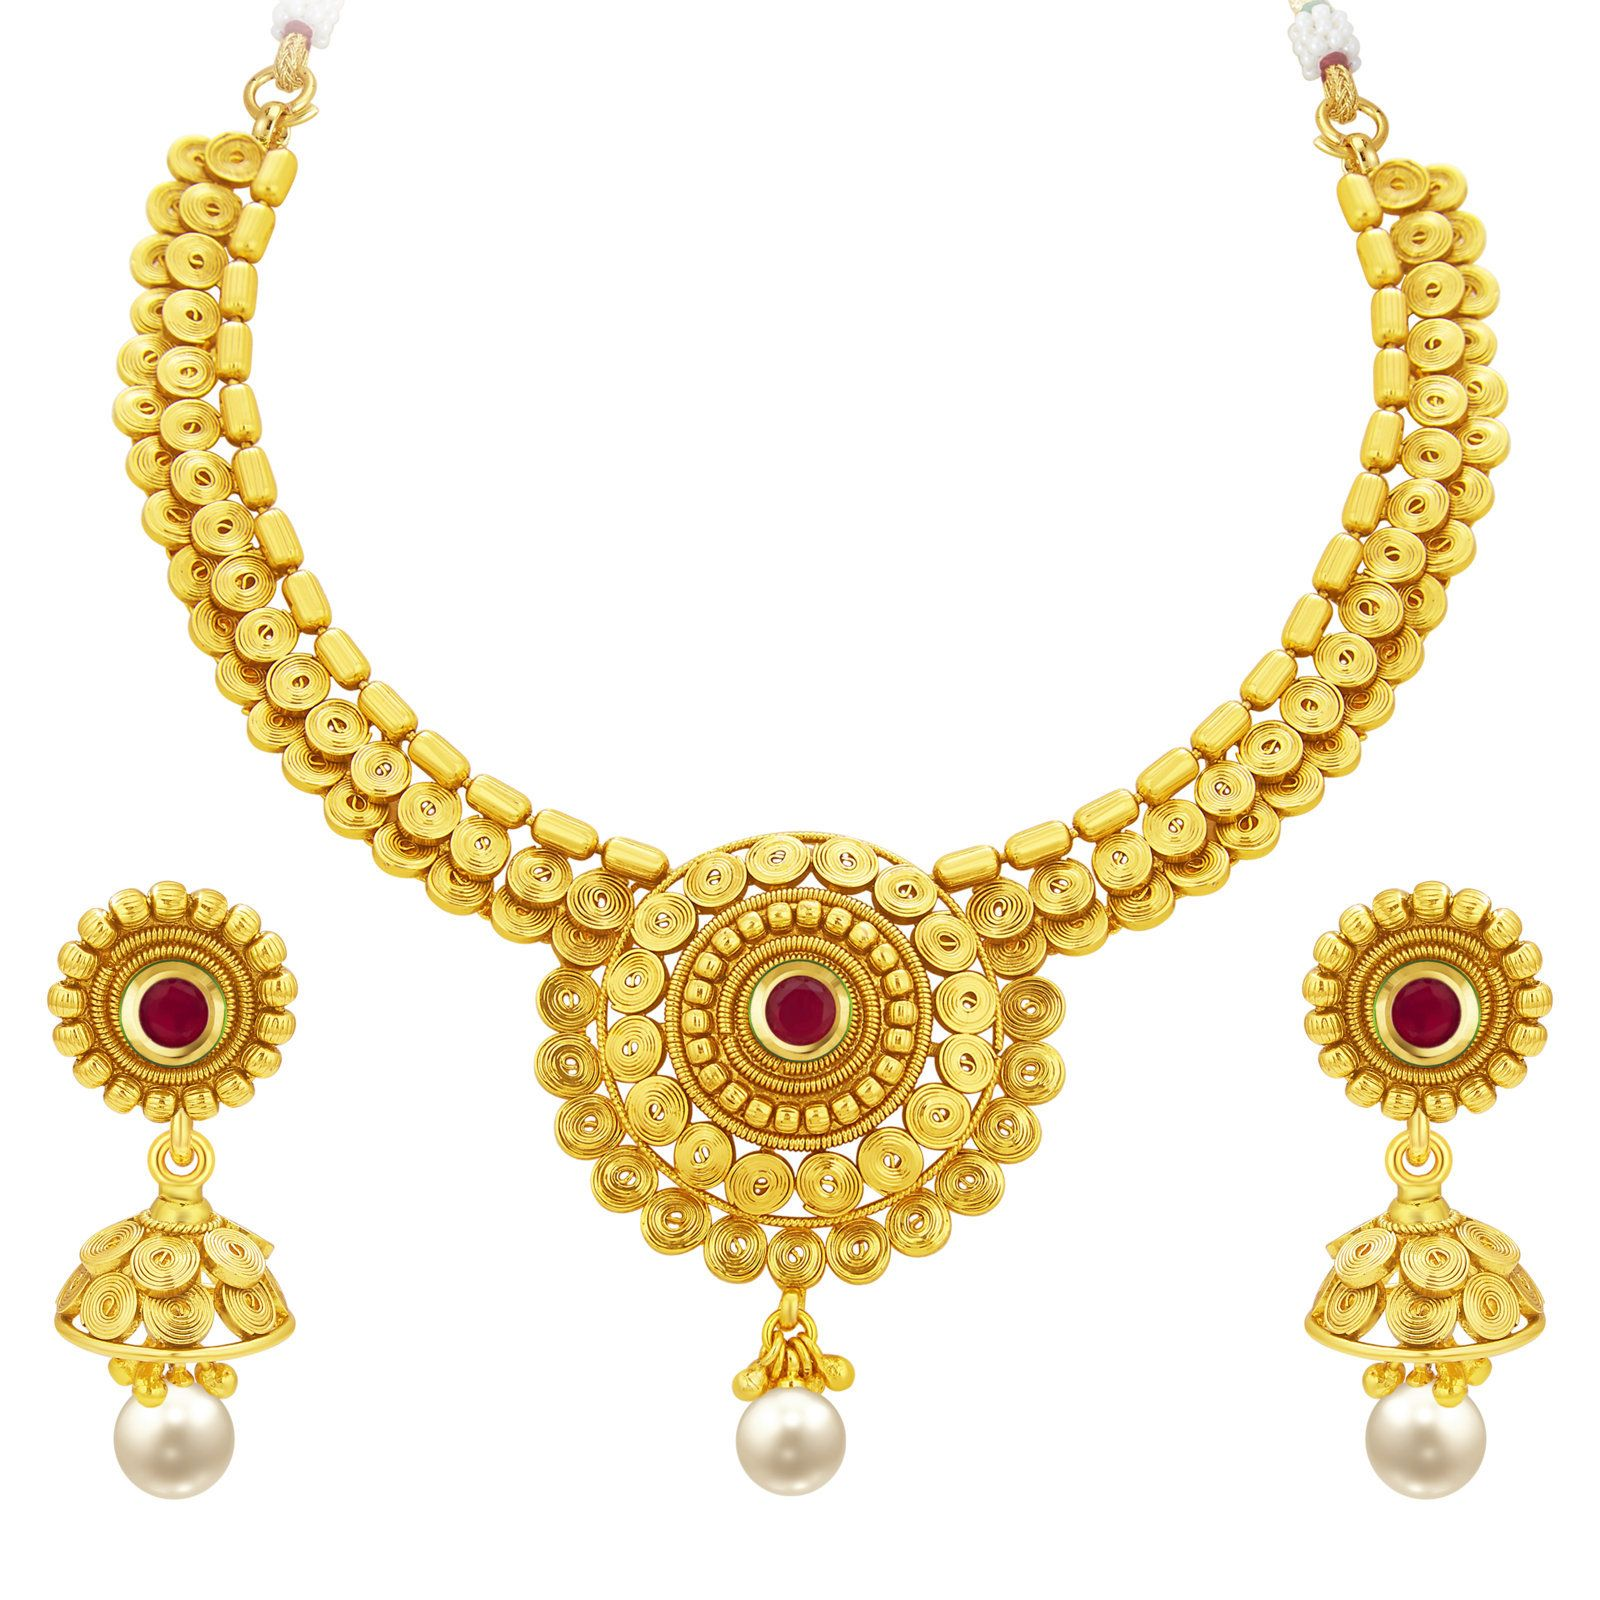 Jalebi Gold Plated Necklace Set For Women  sc 1 st  Pinterest & Jalebi Gold Plated Necklace Set For Women | Jewellery Sets ...